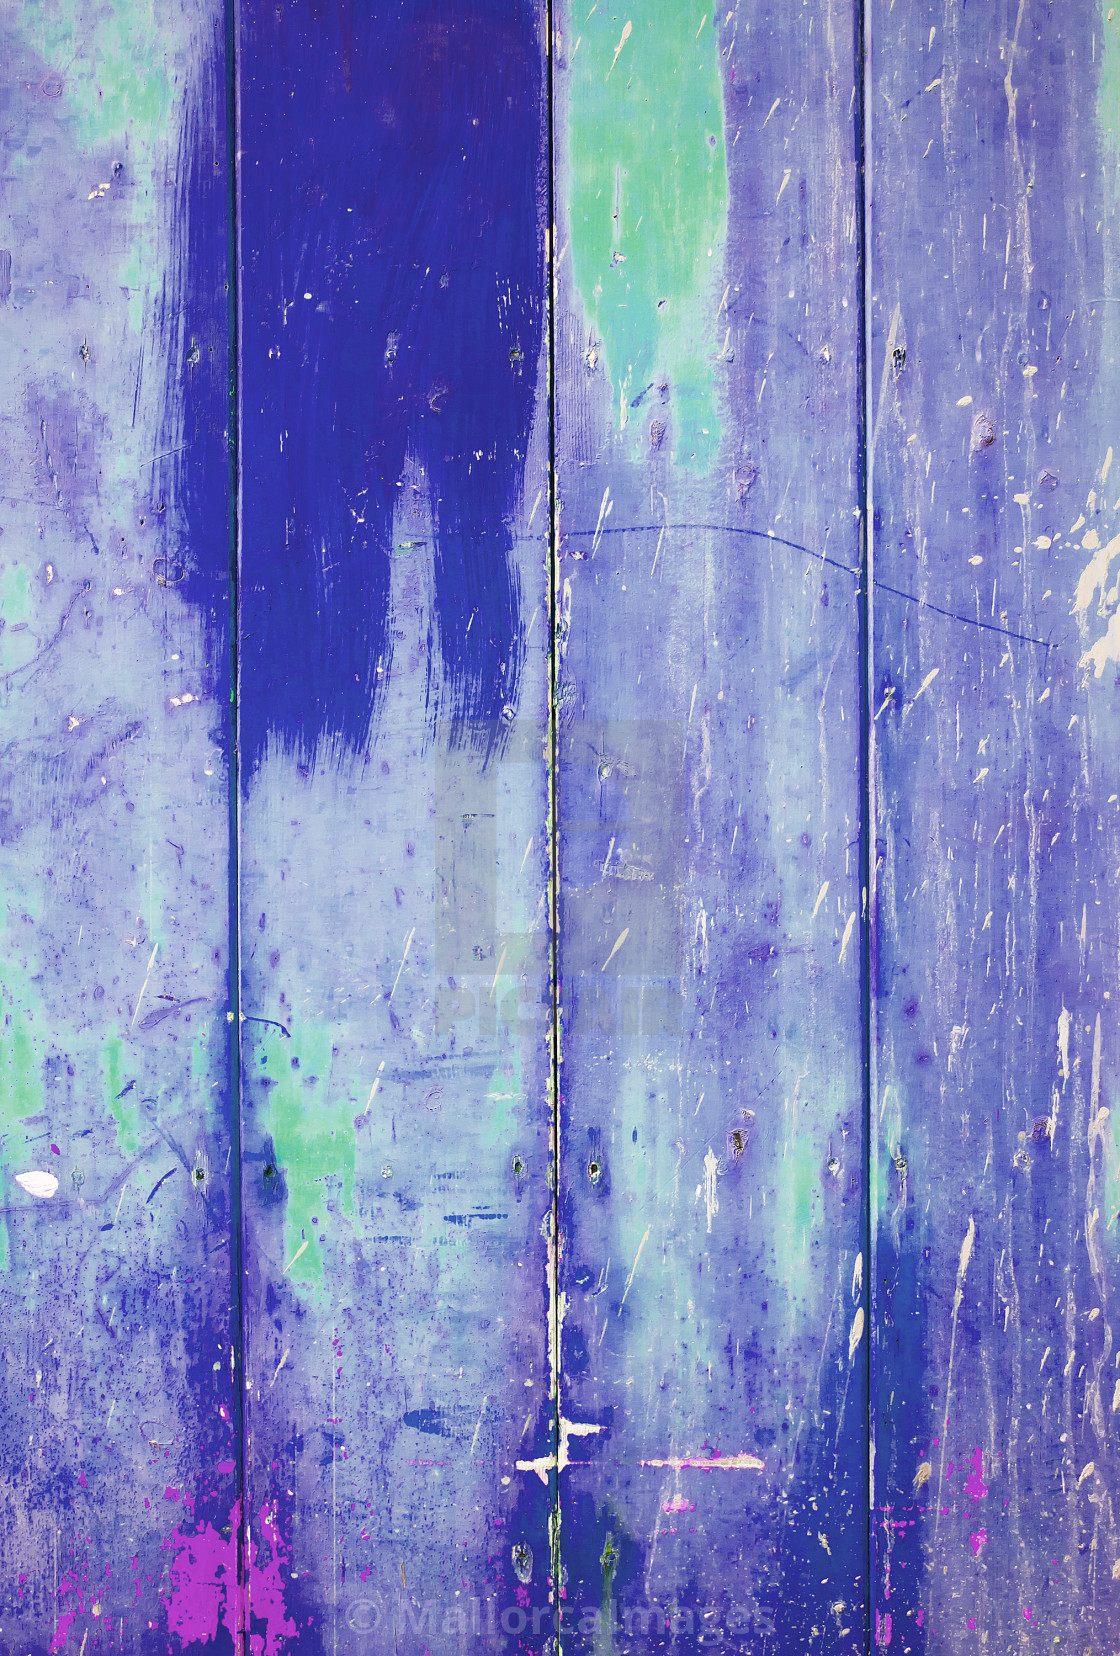 Blue grungy hippie background license for 992 on picfair blue grungy hippie background stock image voltagebd Choice Image